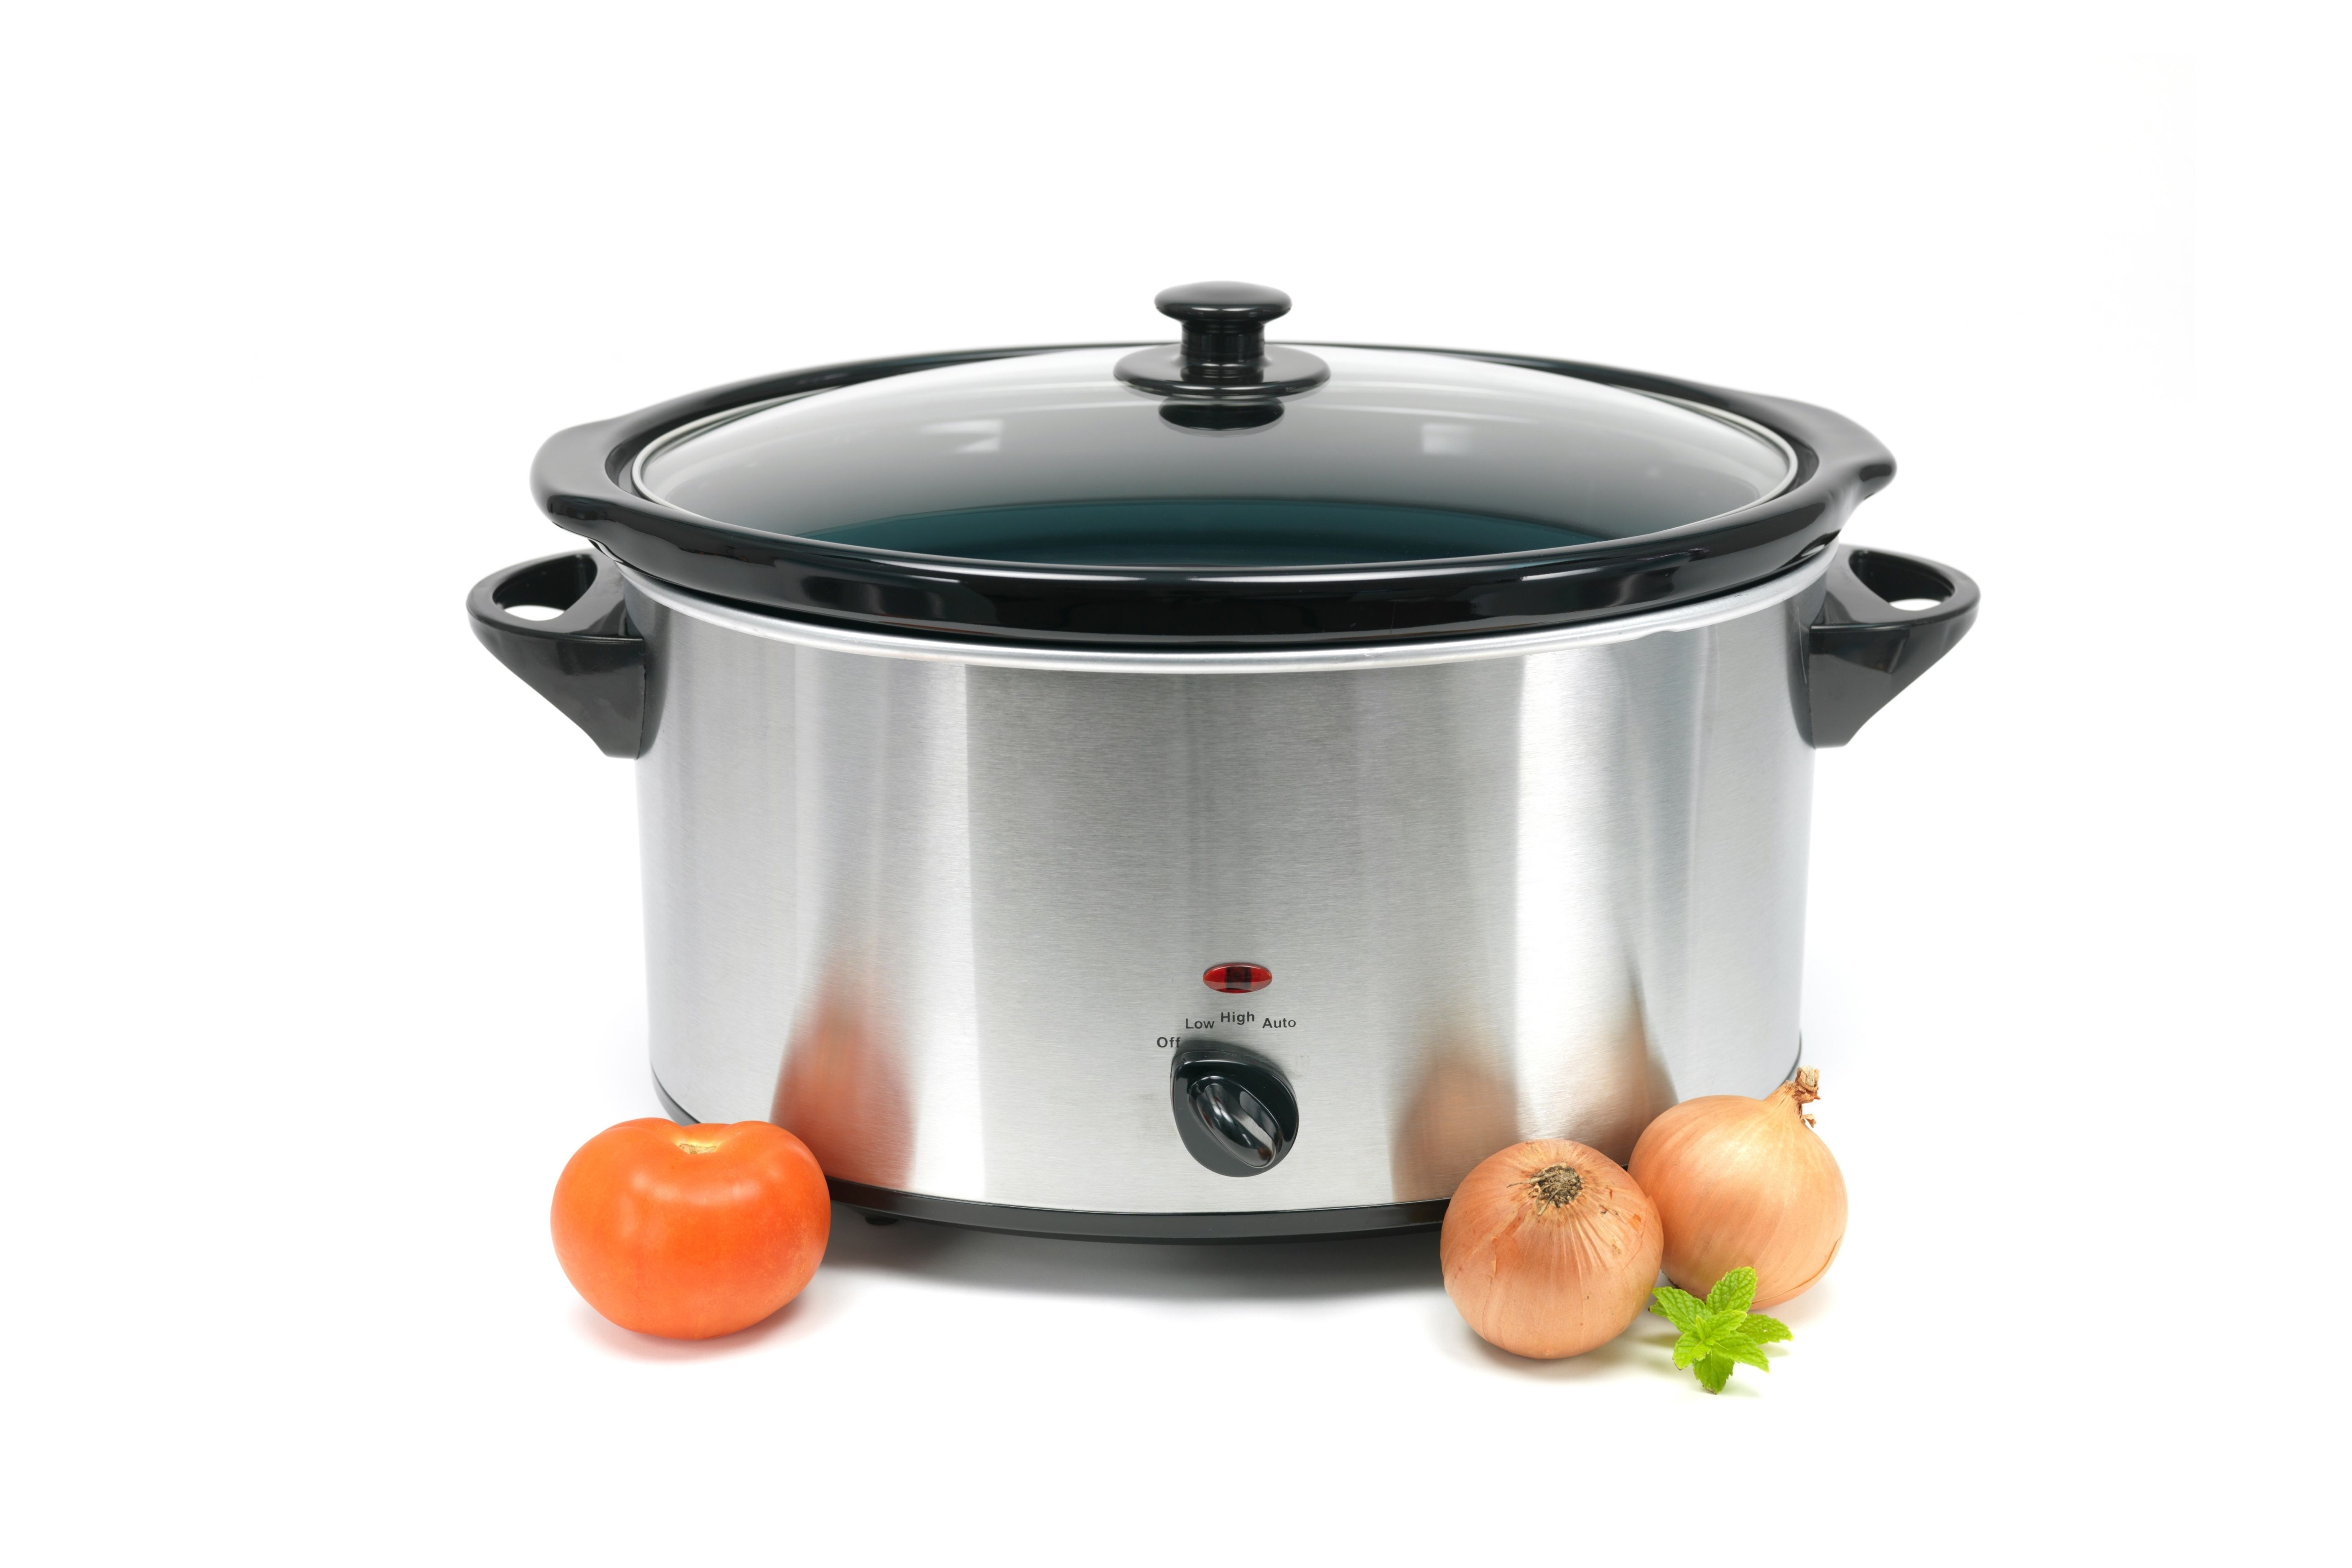 Maintaining Rice Cookers And Slow Cookers. Tips And Regulations